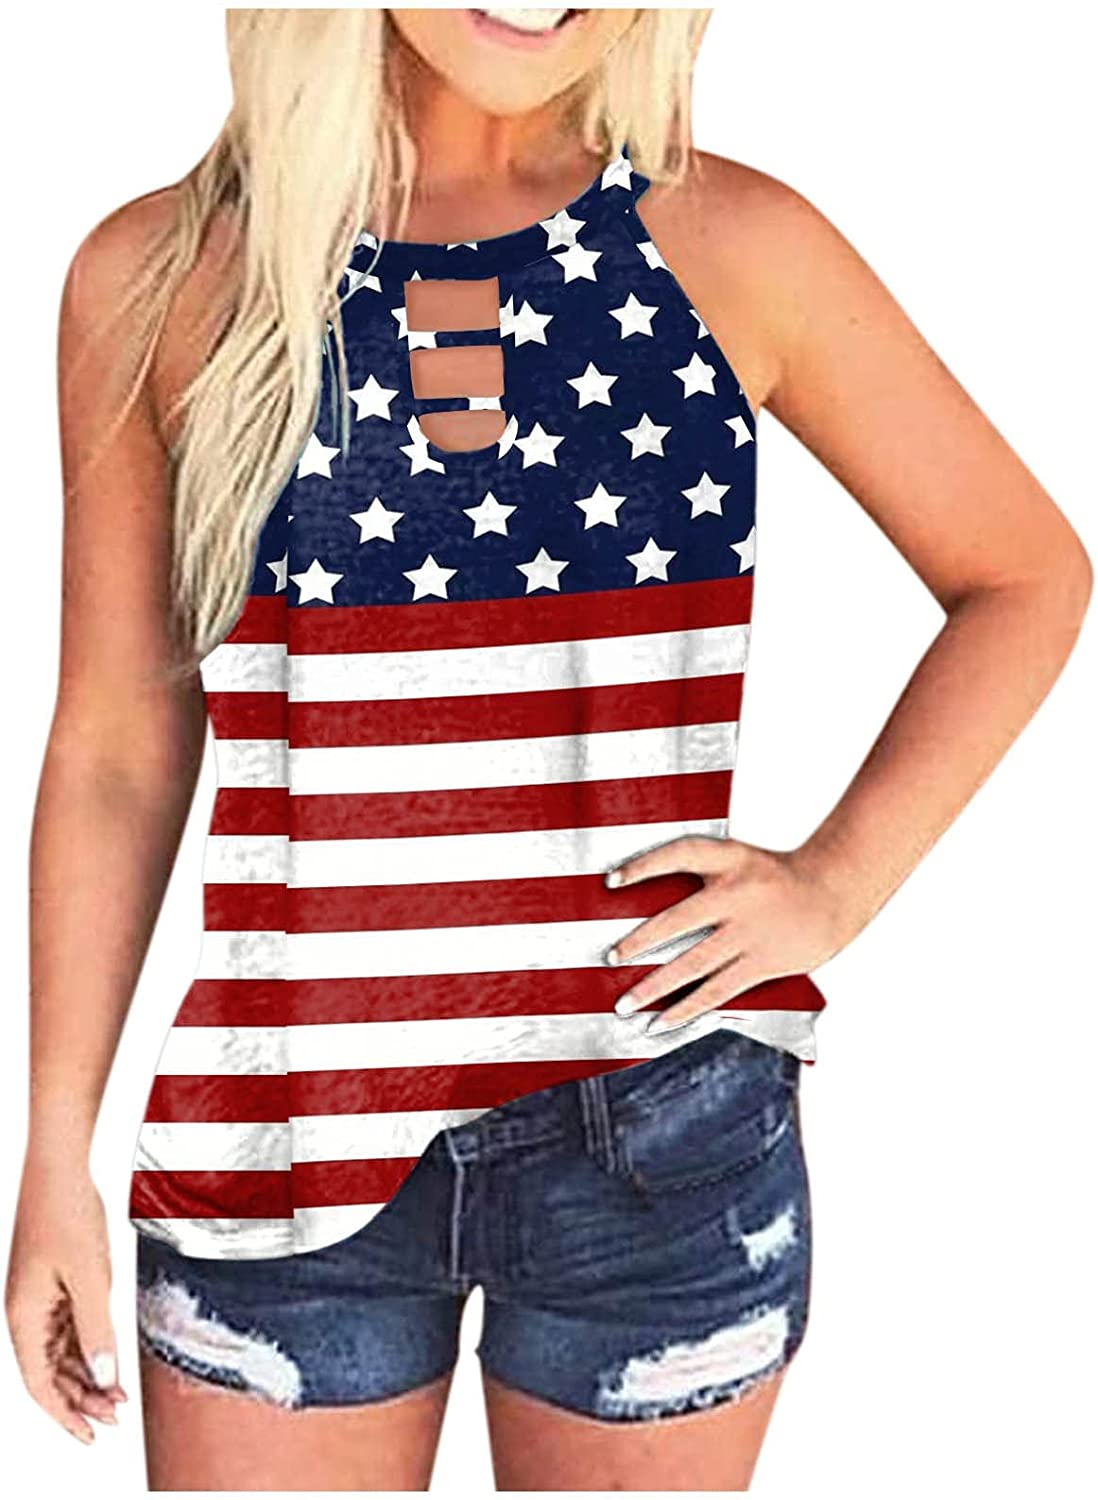 Gerichy Tank Tops for Women, Womens Plus Size Casual Summer Sleeveless Loose Fit Tank Vest Tees Shirts Blouses Tunics